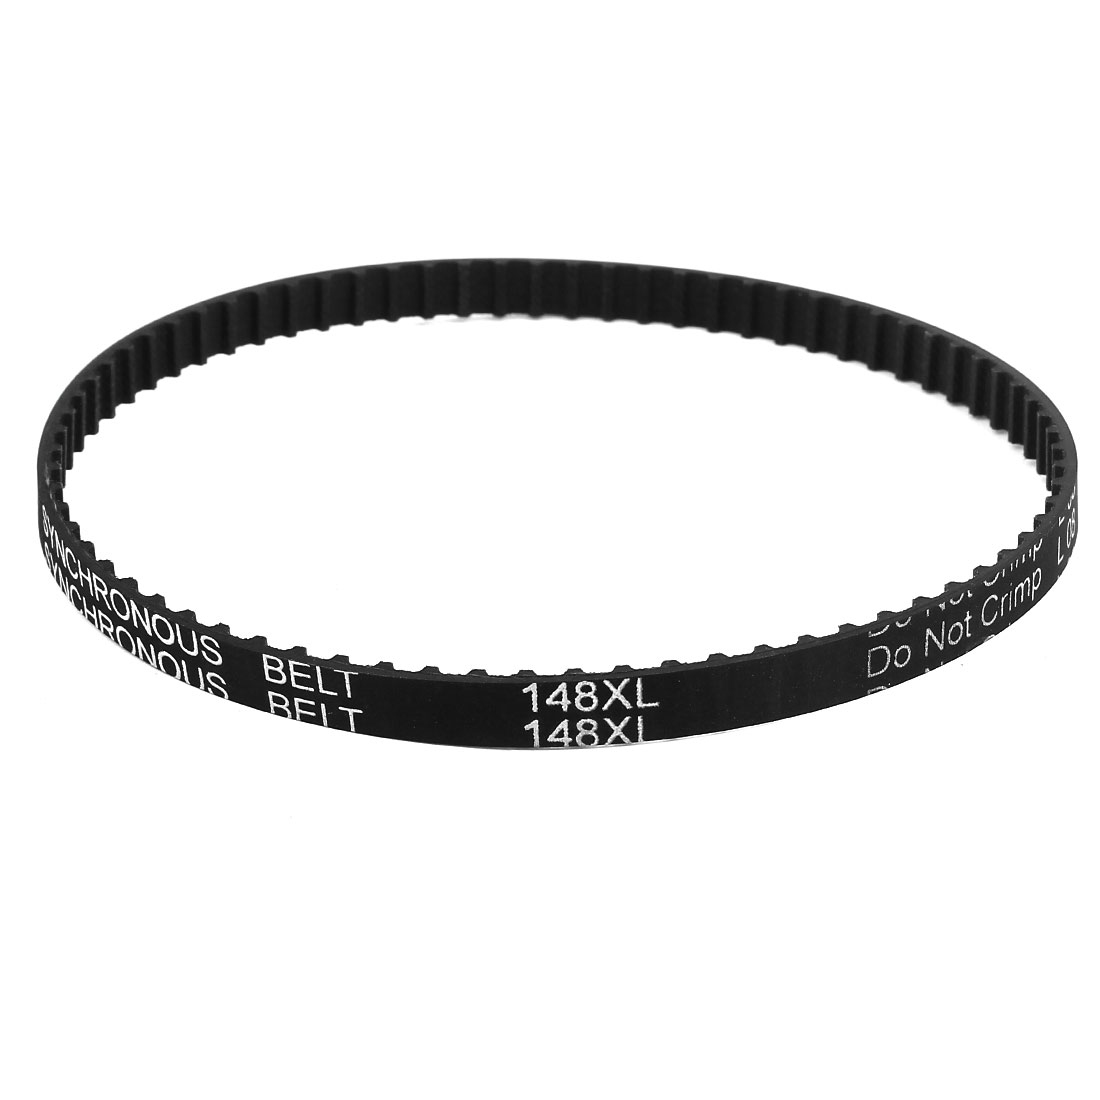 148XL 031 74T 7.9mm Width 5.08mm Pitch Cogged Industrial Timing Belt